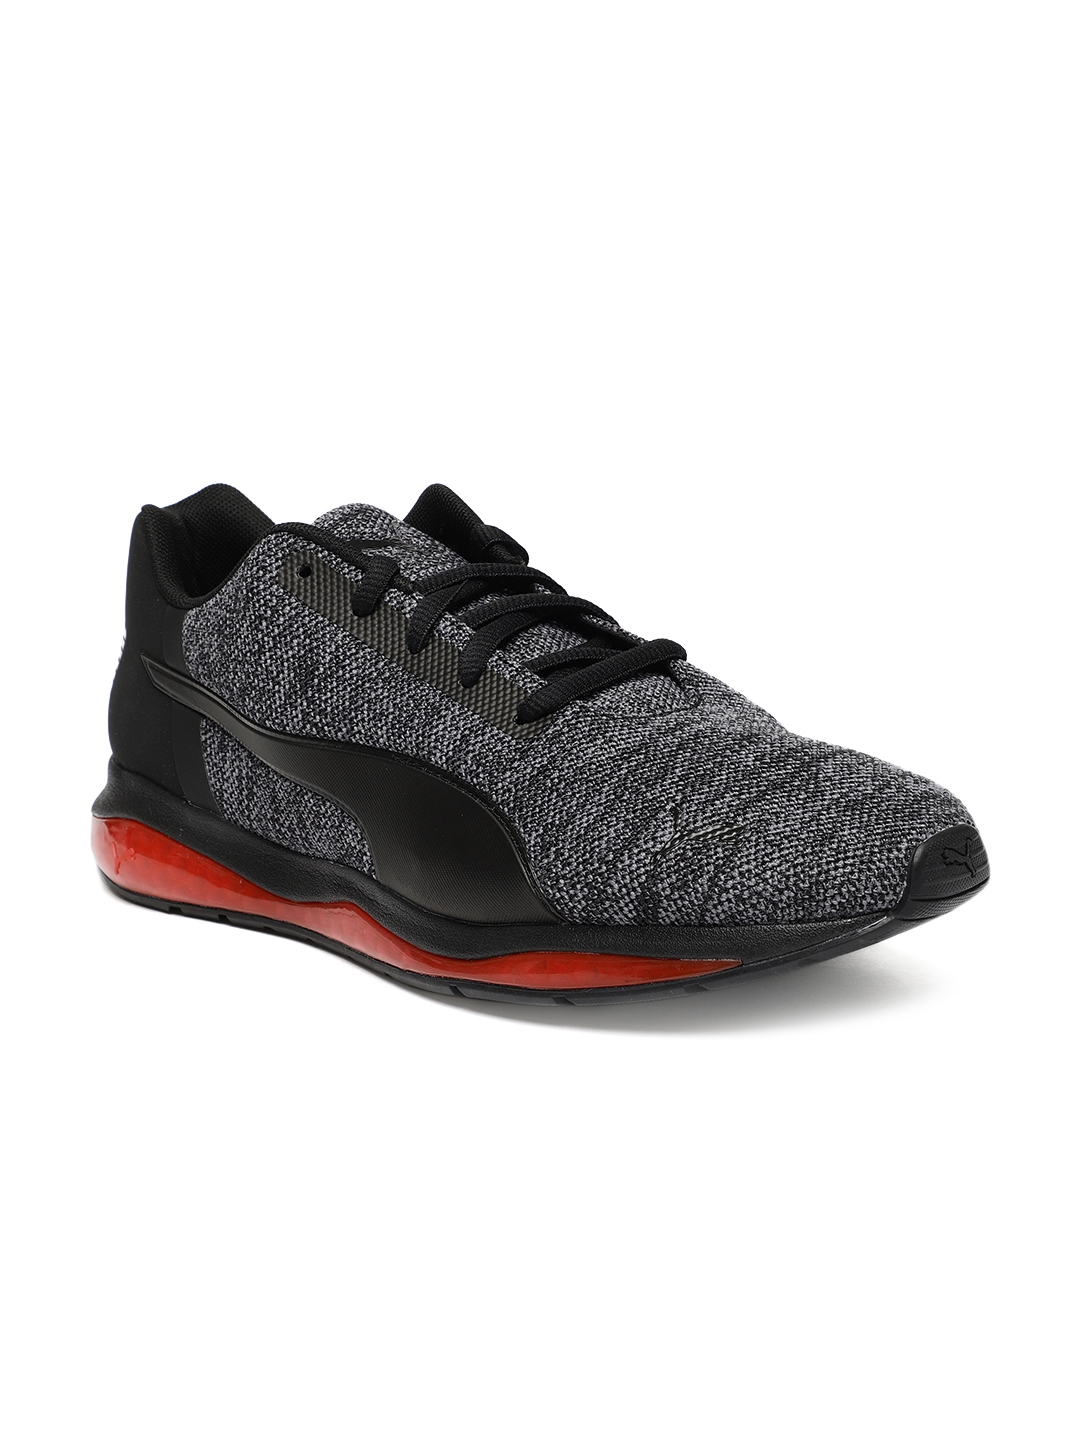 3663ef3329d Buy Puma Men Black Cell Ultimate Knit Running Shoes - Sports Shoes ...